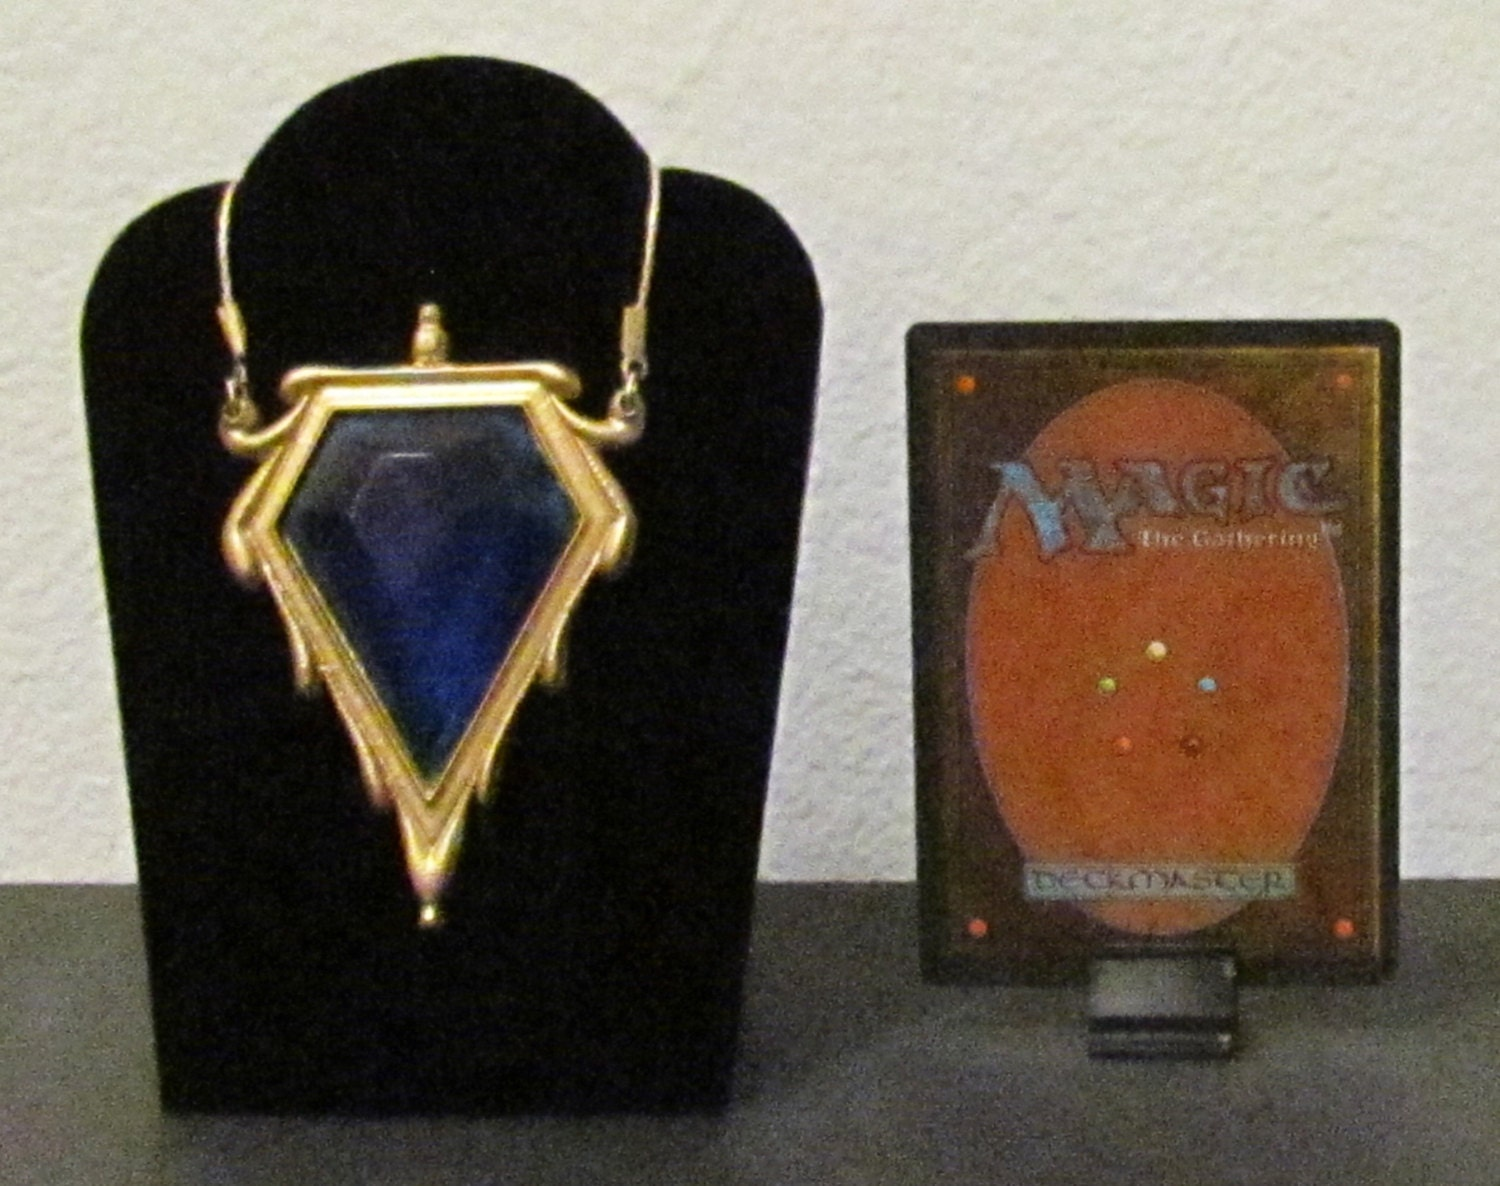 mtg magic the gathering mox sapphire pendant necklace. Black Bedroom Furniture Sets. Home Design Ideas